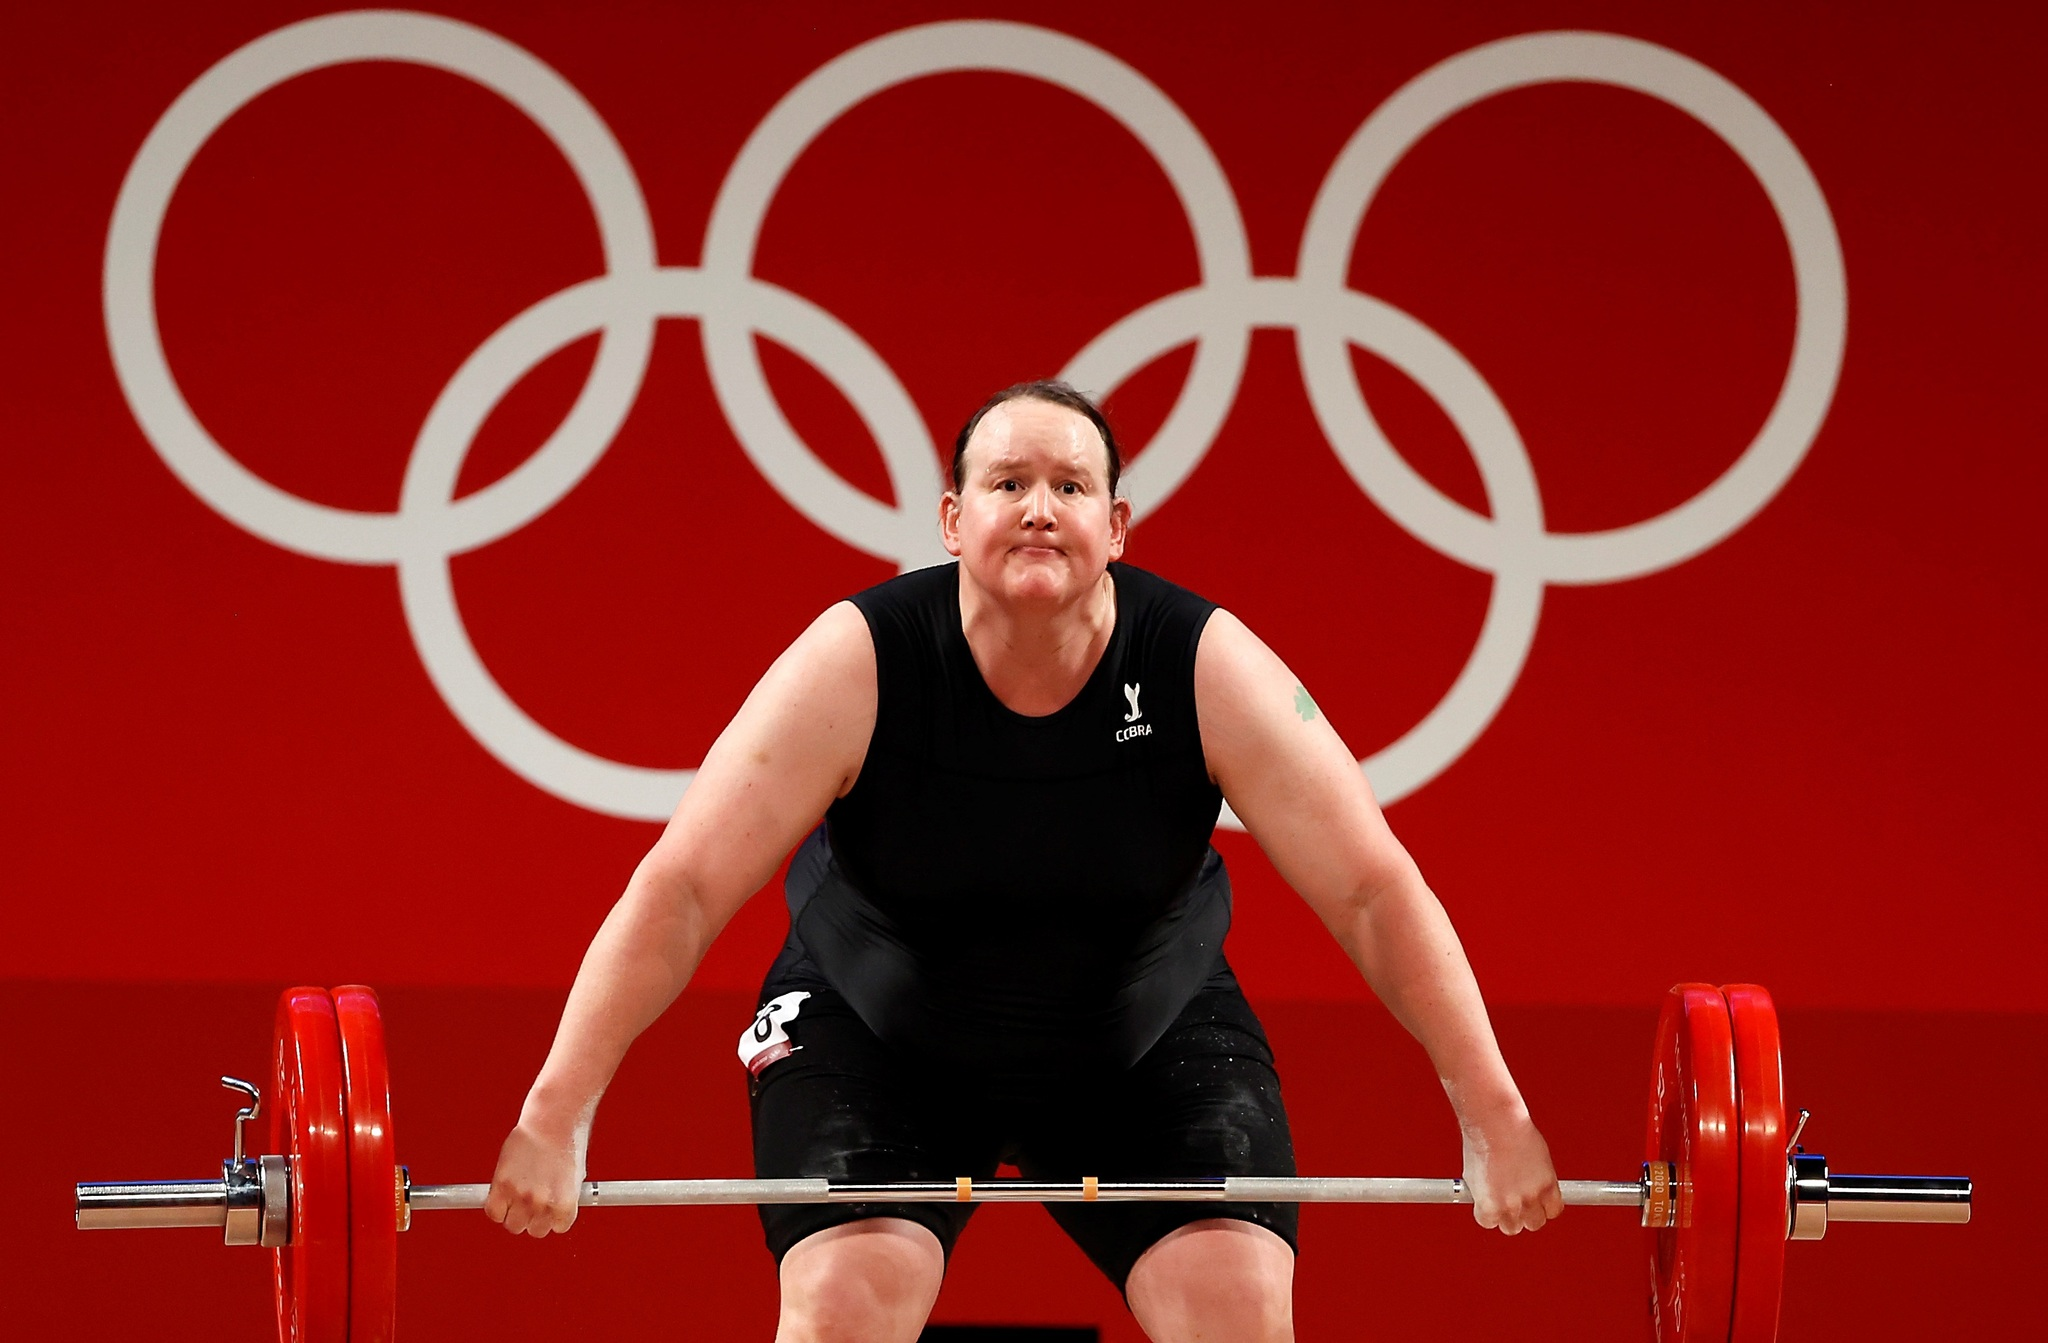 New Zealand's Laurel Hubbard, the first-ever trans Olympic athlete, during the women's 87kg weightlifting event.